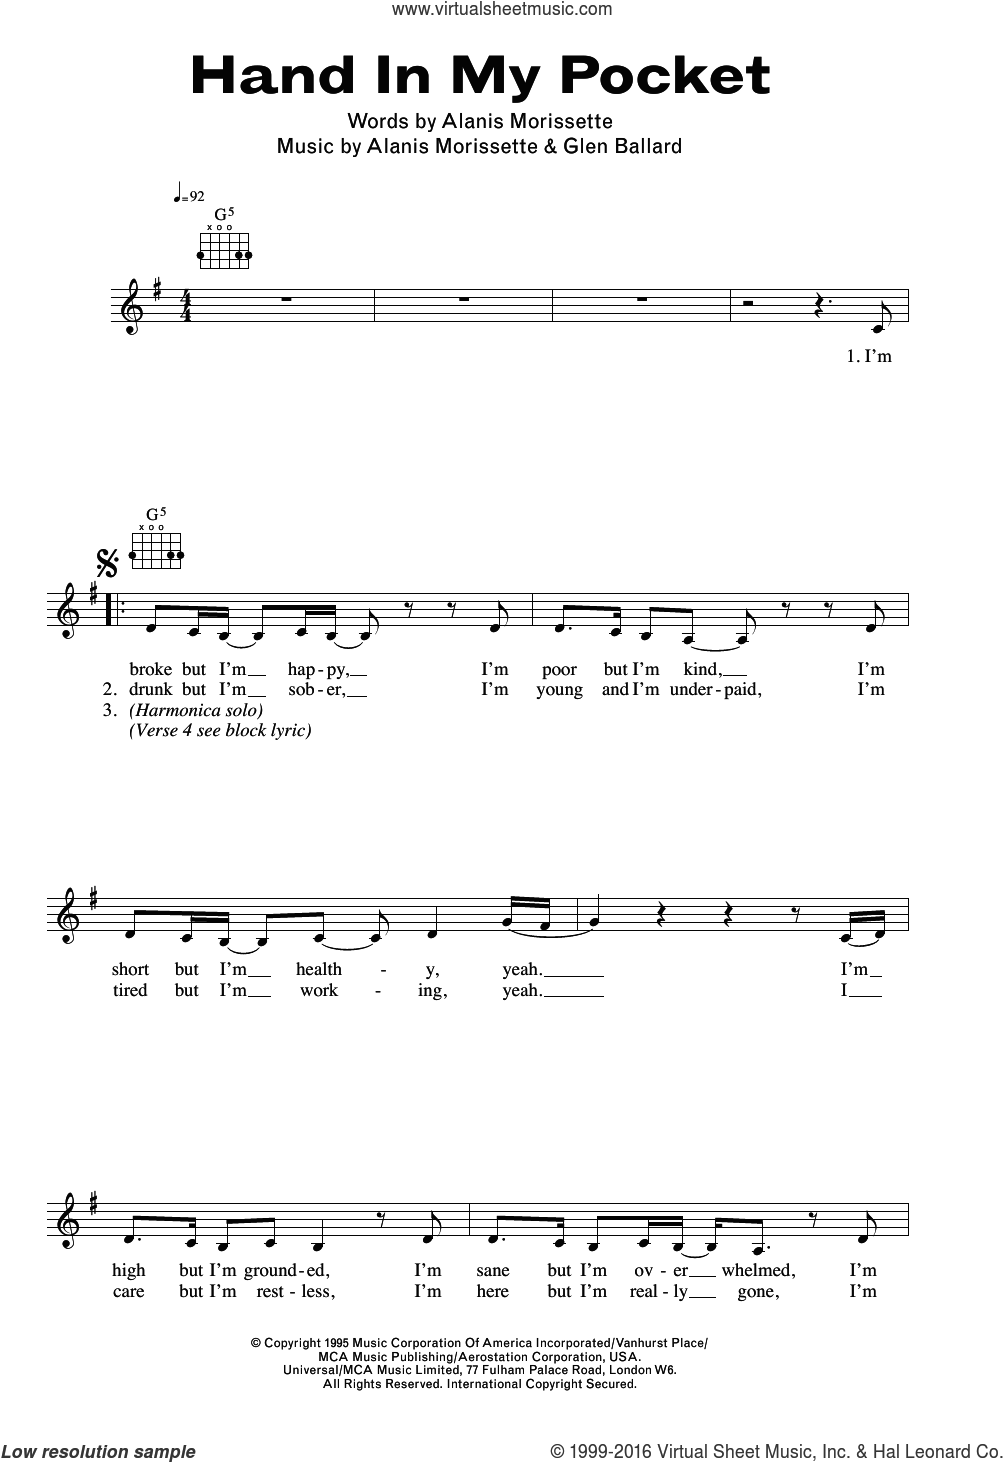 Hand In My Pocket sheet music for voice and other instruments (fake book) by Alanis Morissette and Glen Ballard, intermediate